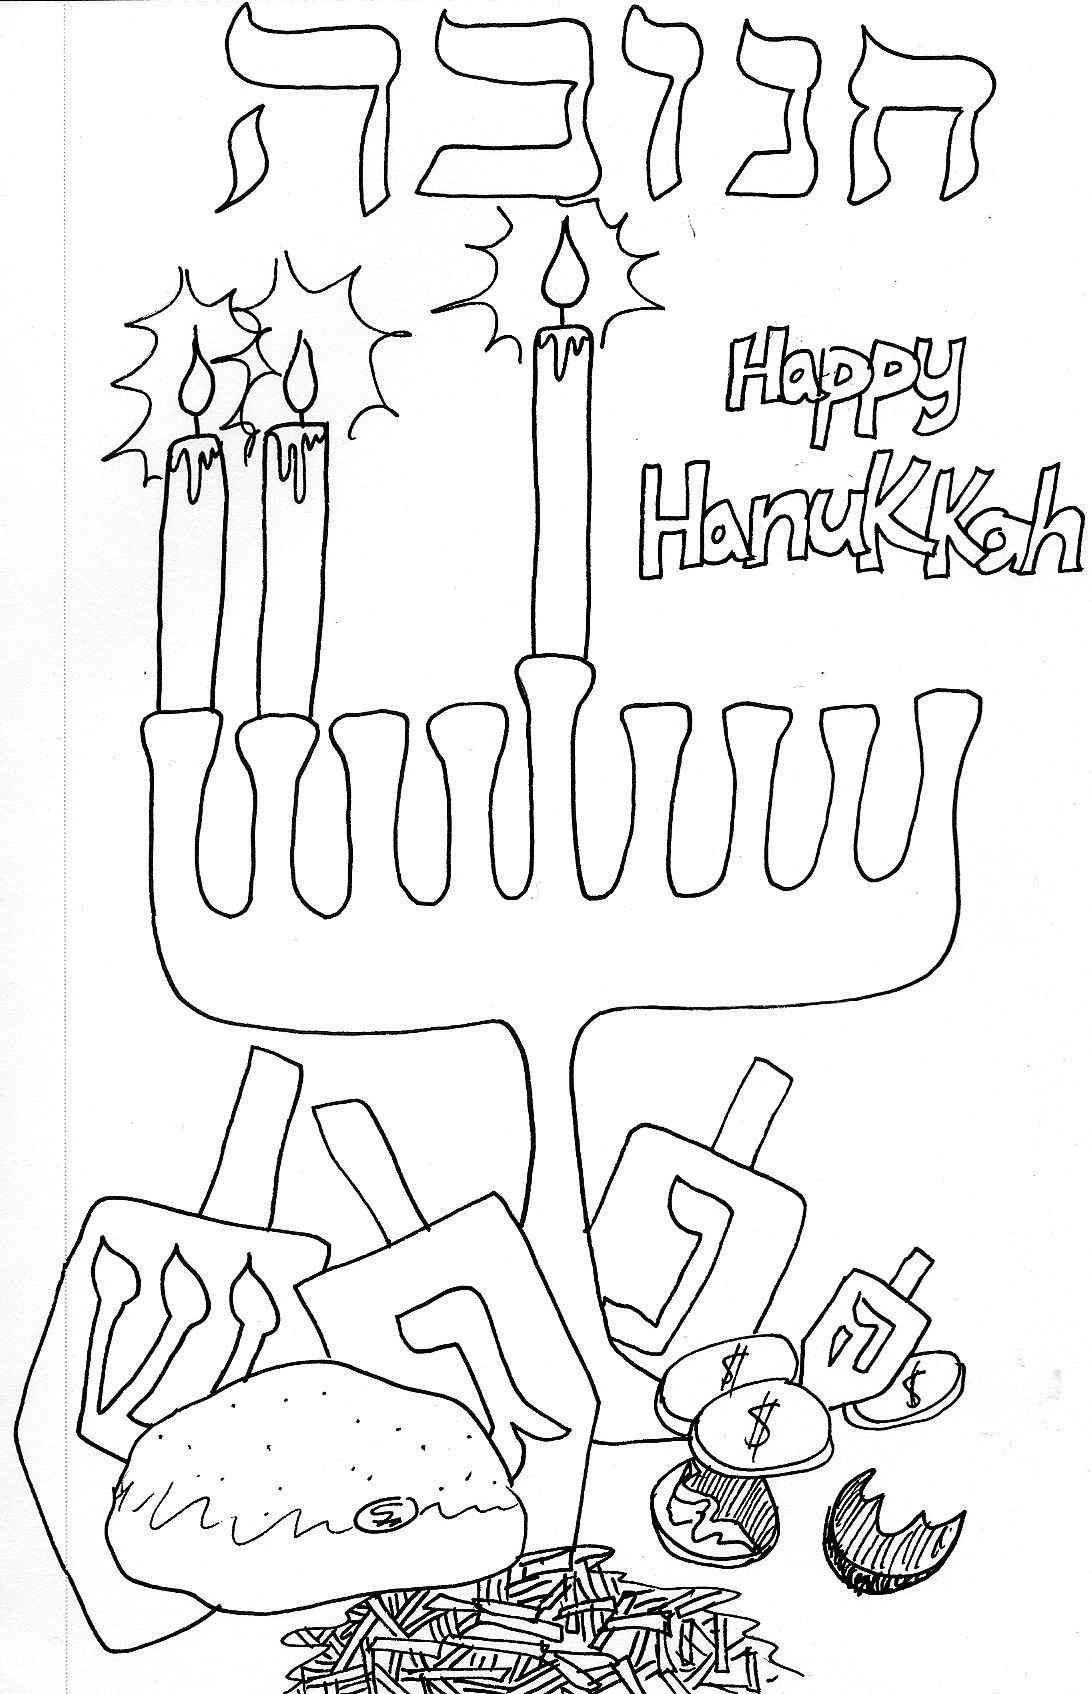 Best Coloring Books For Toddlers  Free Printable Hanukkah Coloring Pages for Kids Best